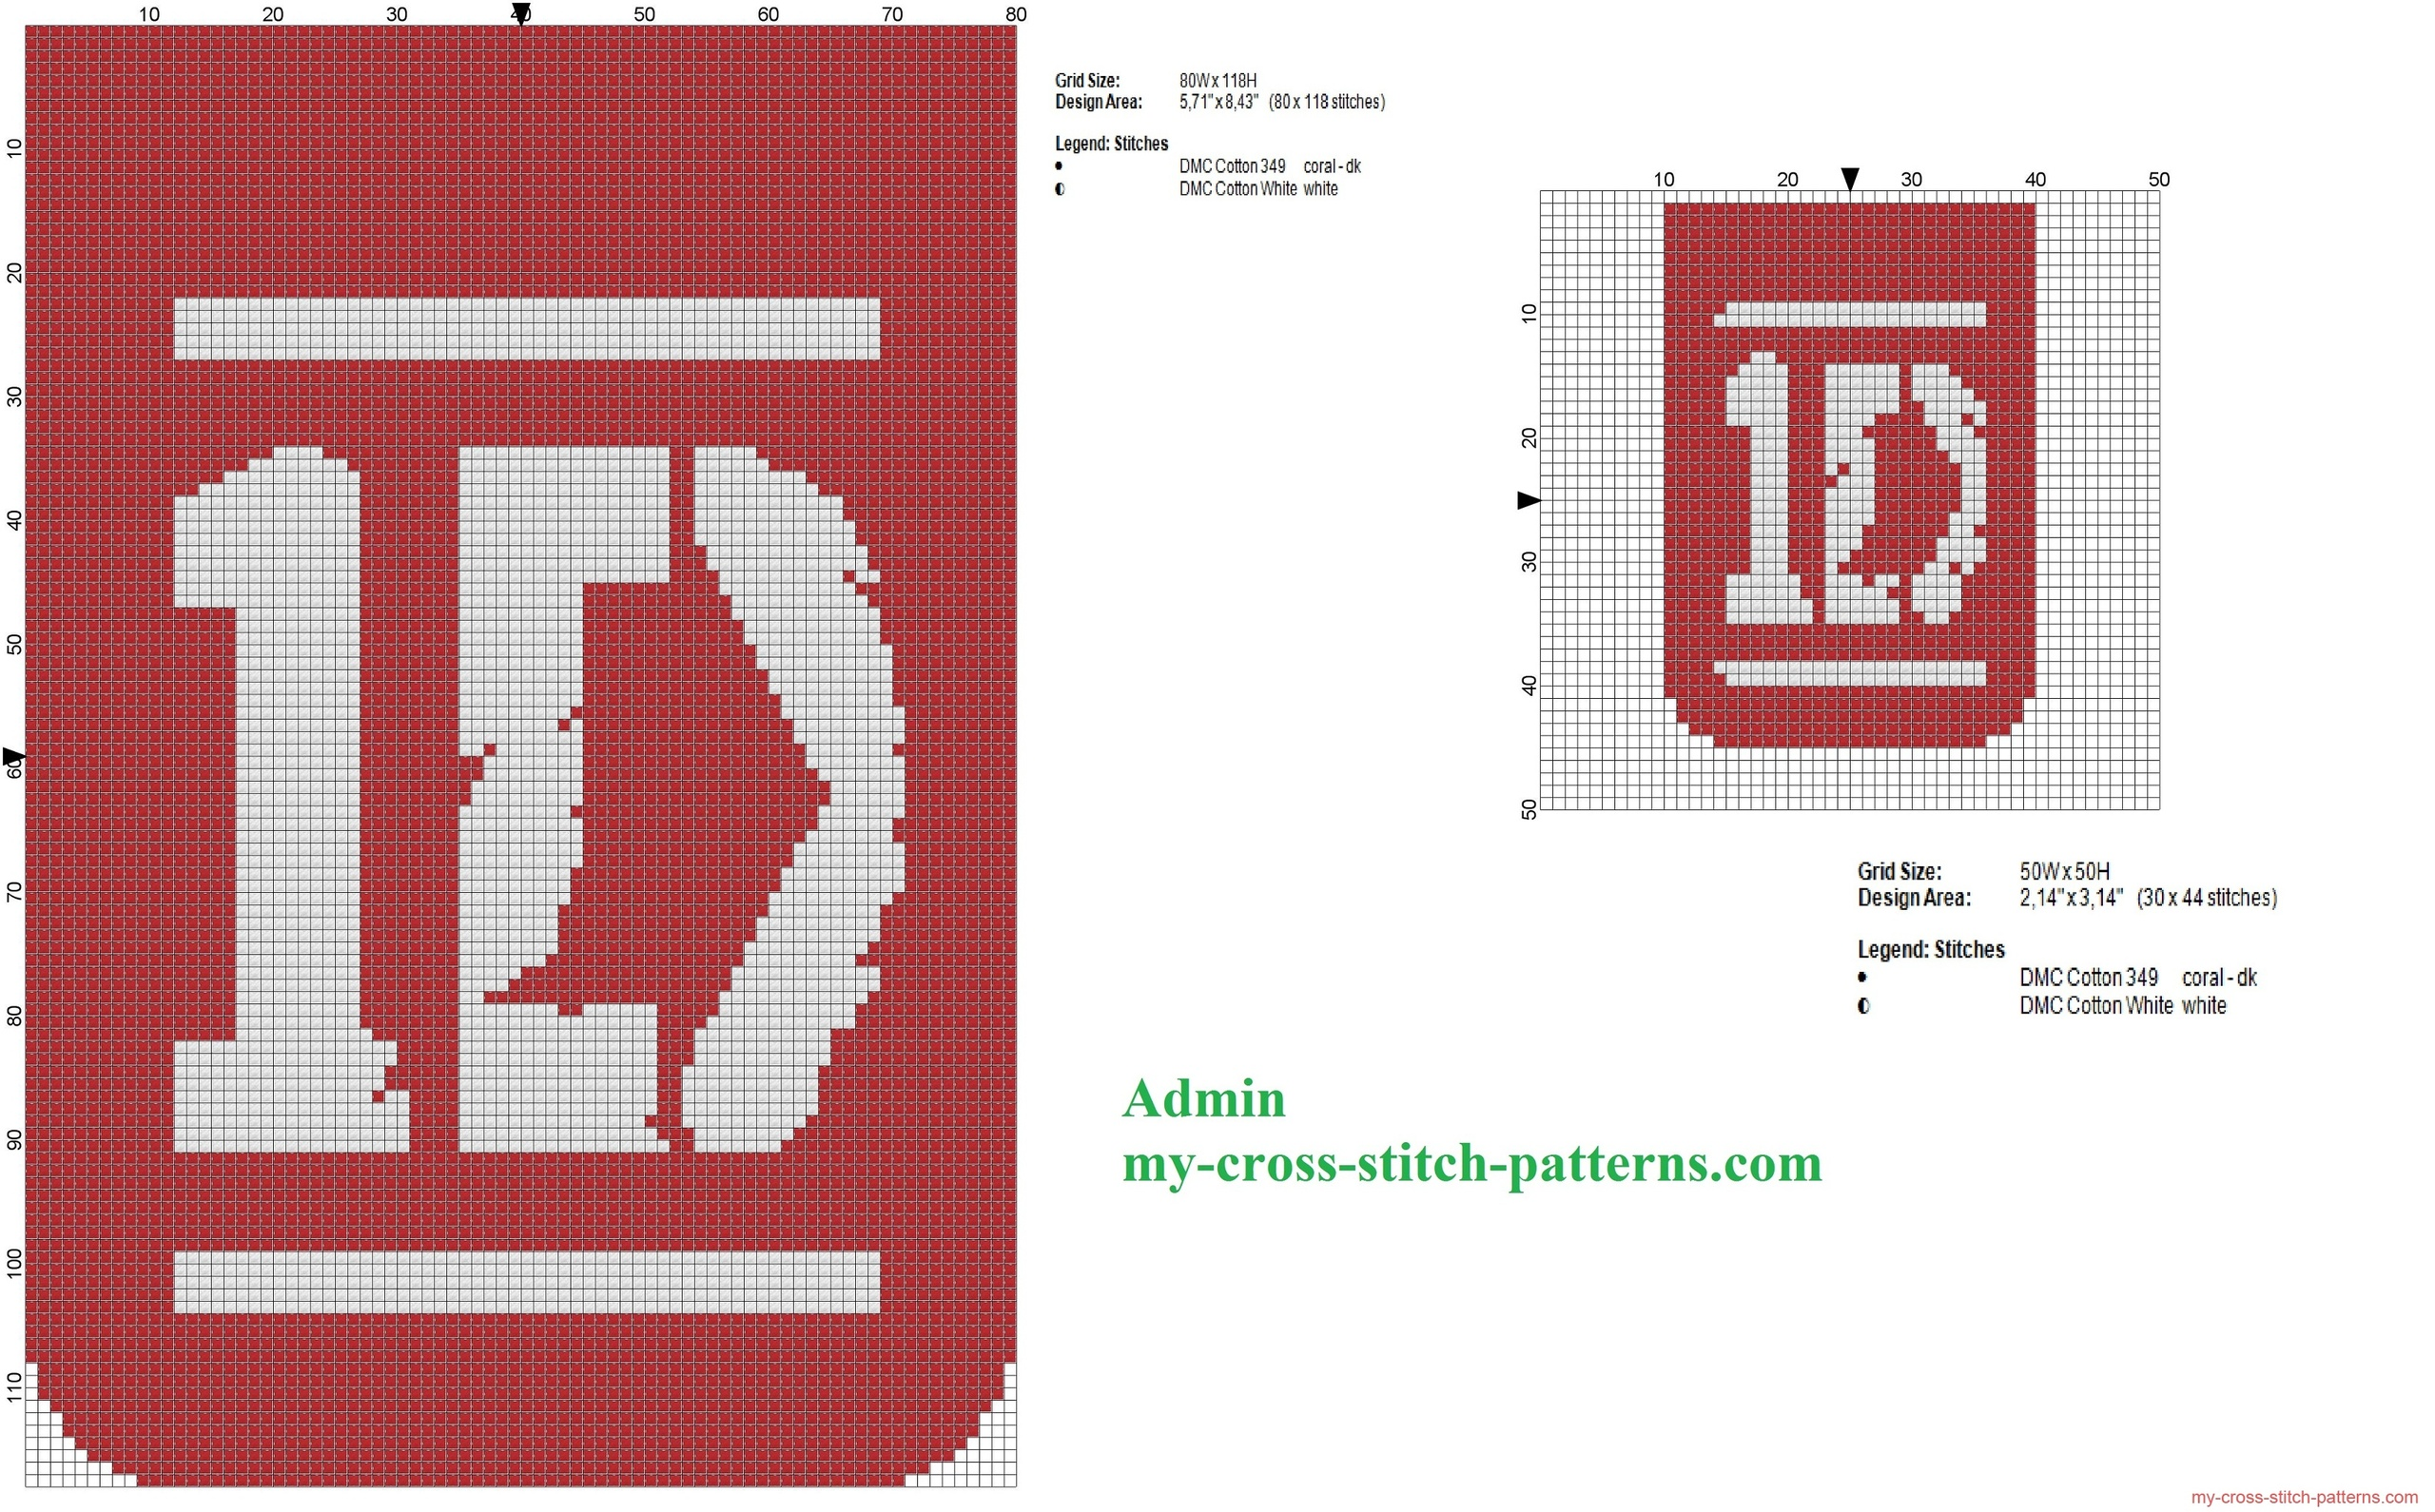 two_cross_stitch_patterns_of_band_one_direction_logos